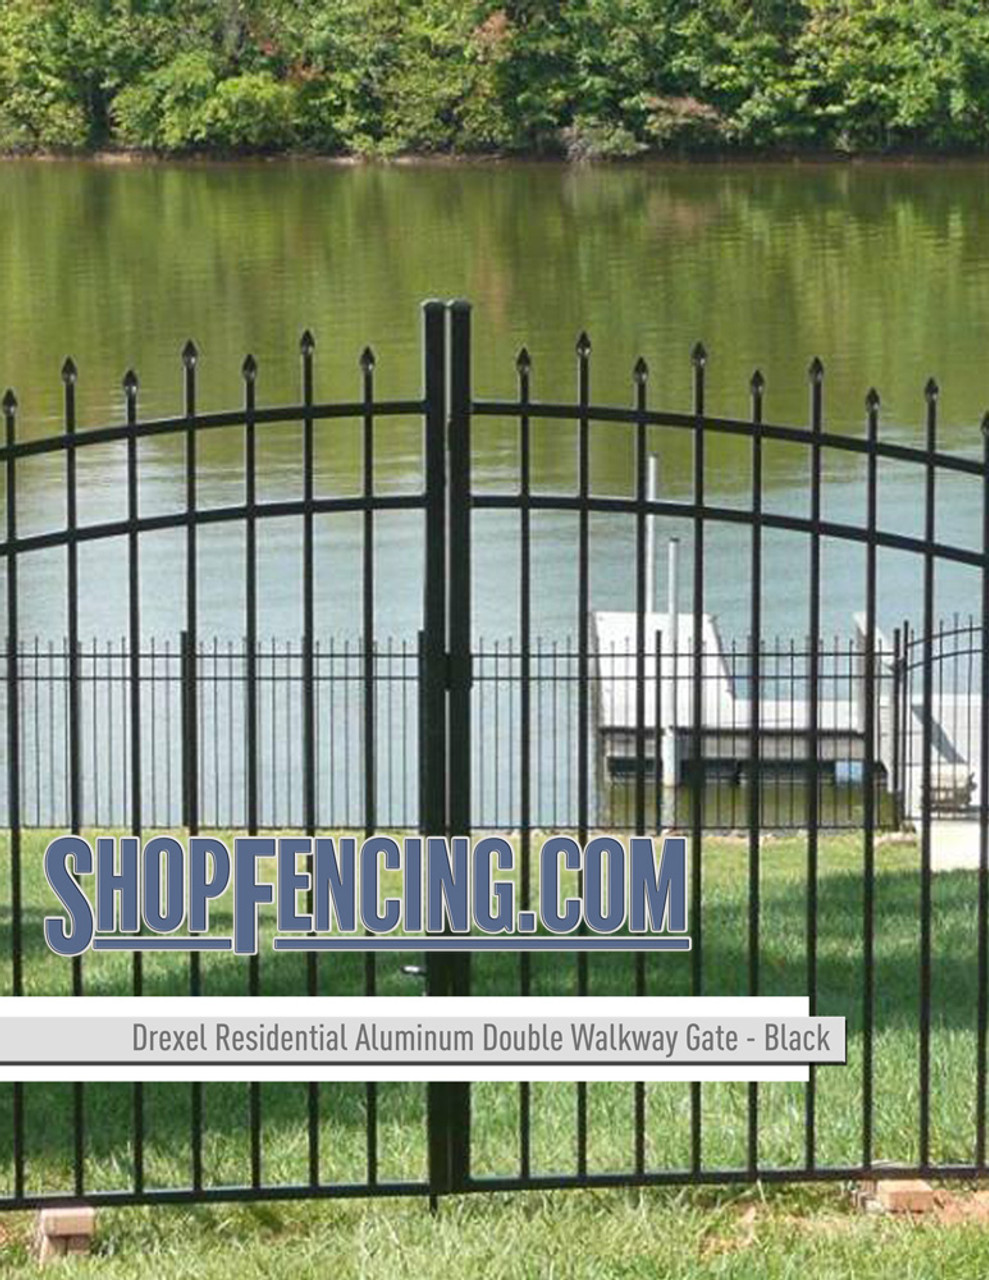 Residential Drexel Aluminum Double Walkway Gate - Rainbow Arch From ShopFencing.com